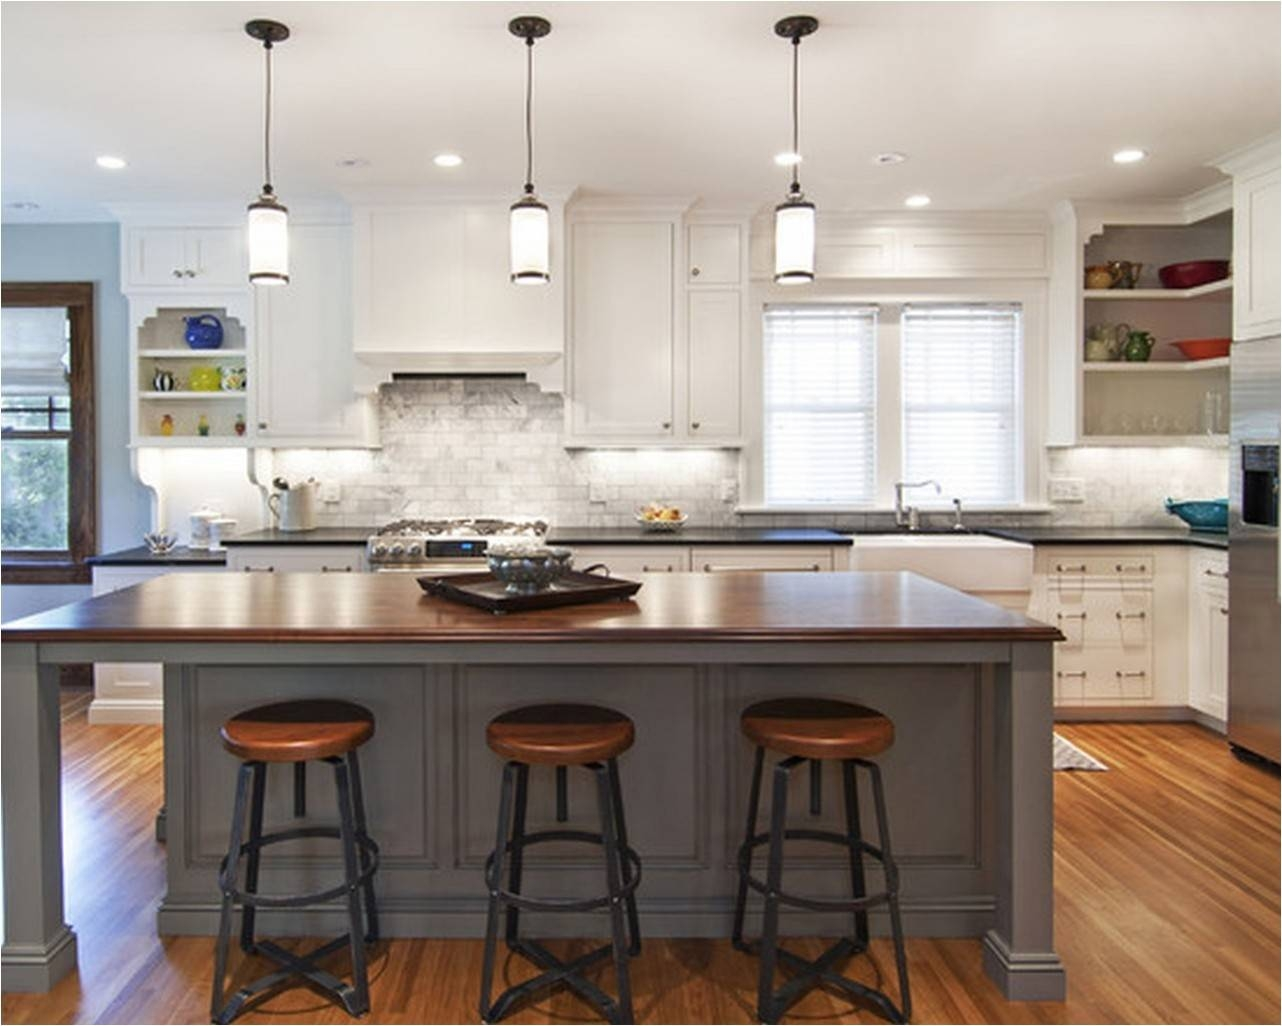 Glass Pendant Lights For Kitchen Island Rustic Kitchen Island In With Regard To Pendant Lights For Island (View 3 of 15)